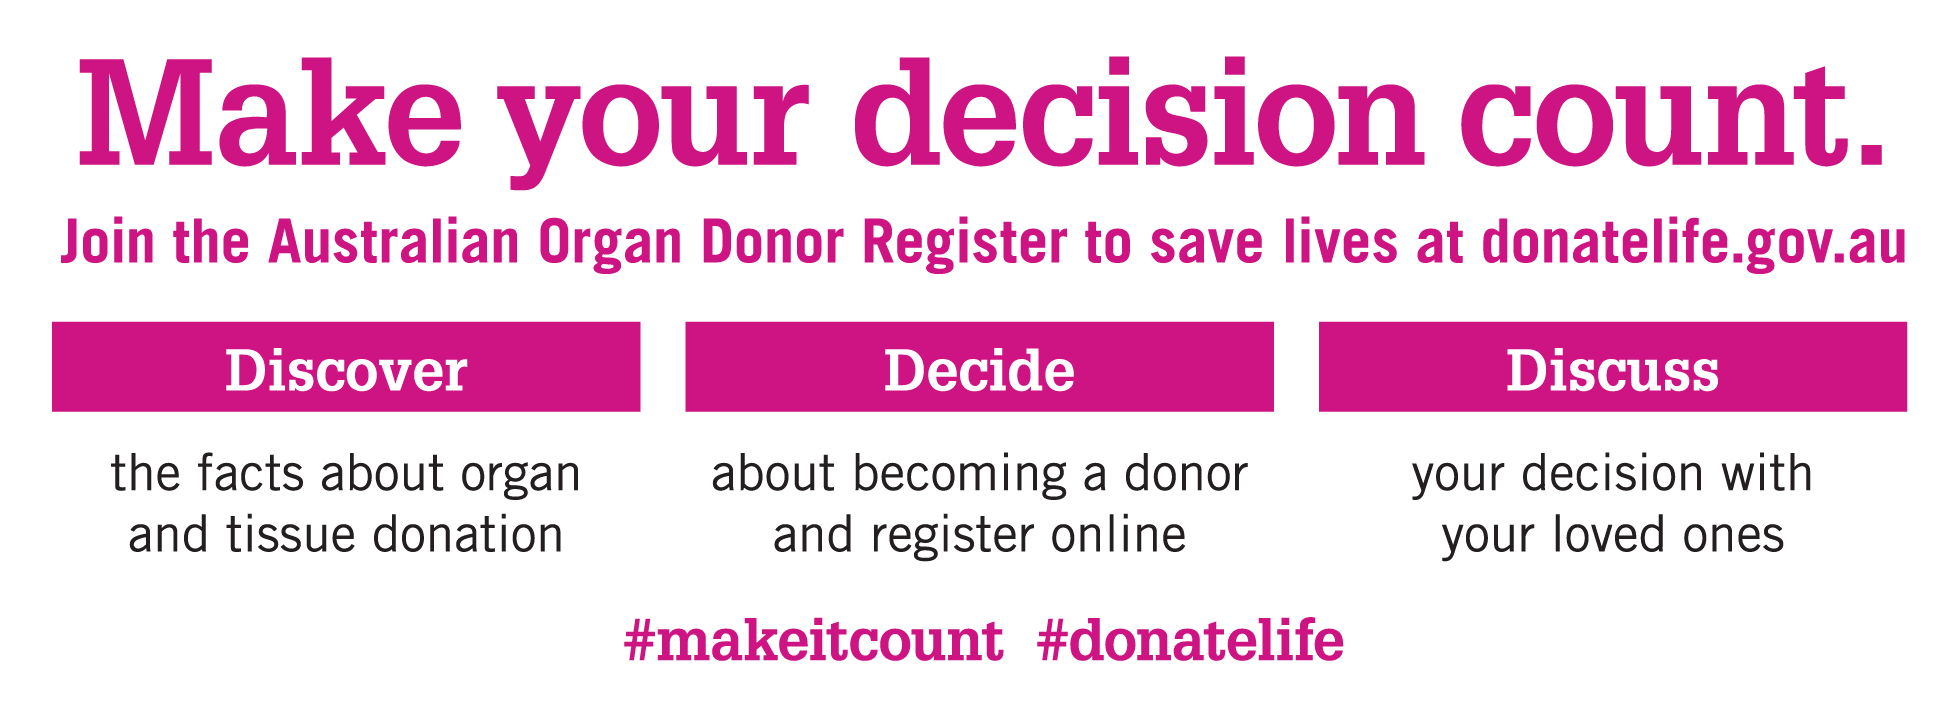 donate life discover, decide, discuss